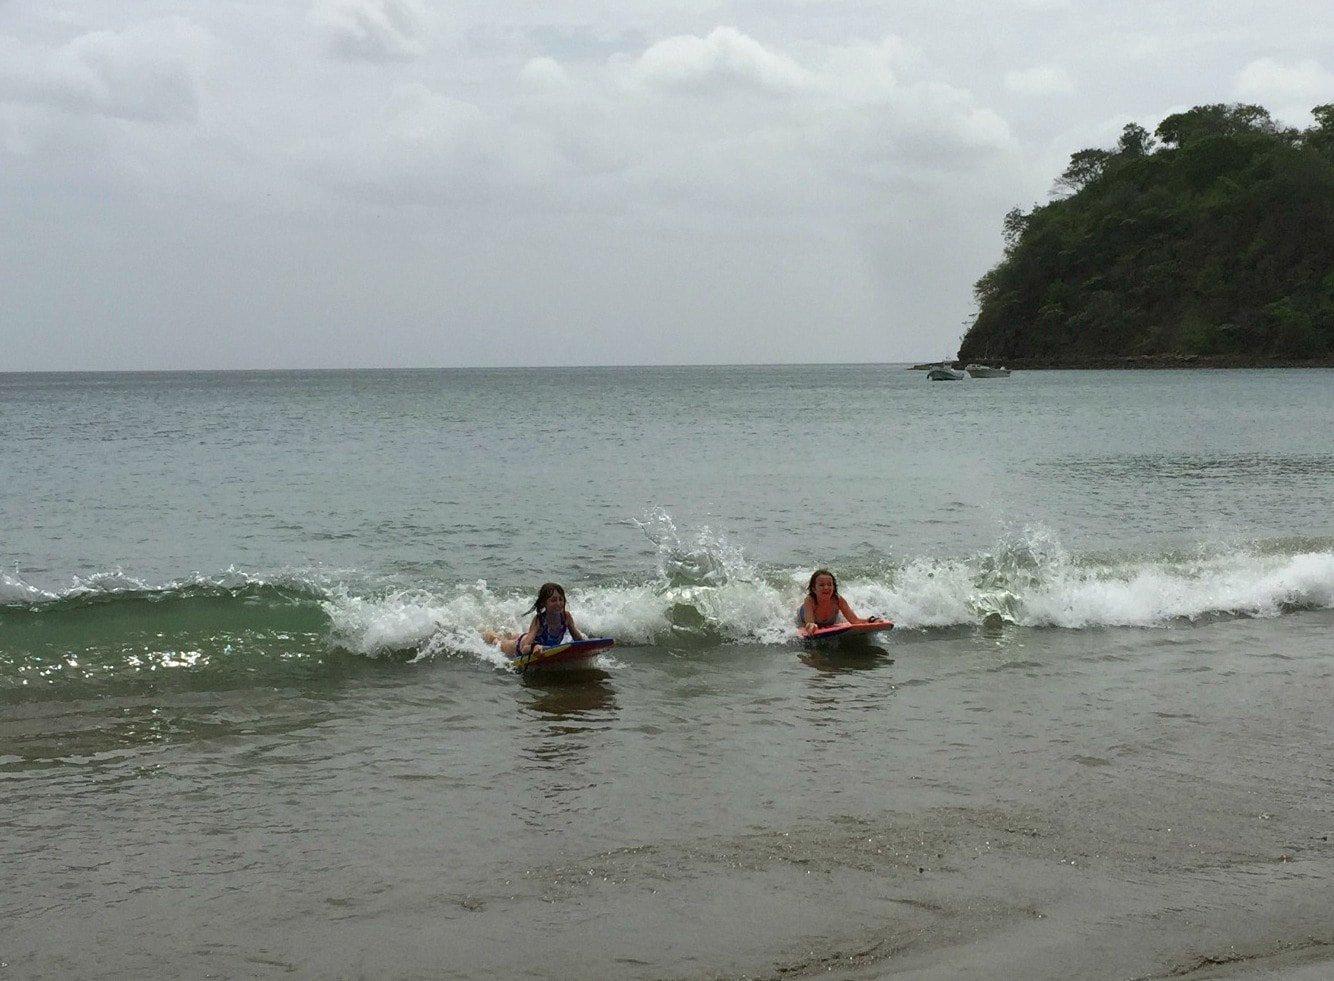 Boogie boarding at El Jobo Beach in Guanacaste, Costa Rica